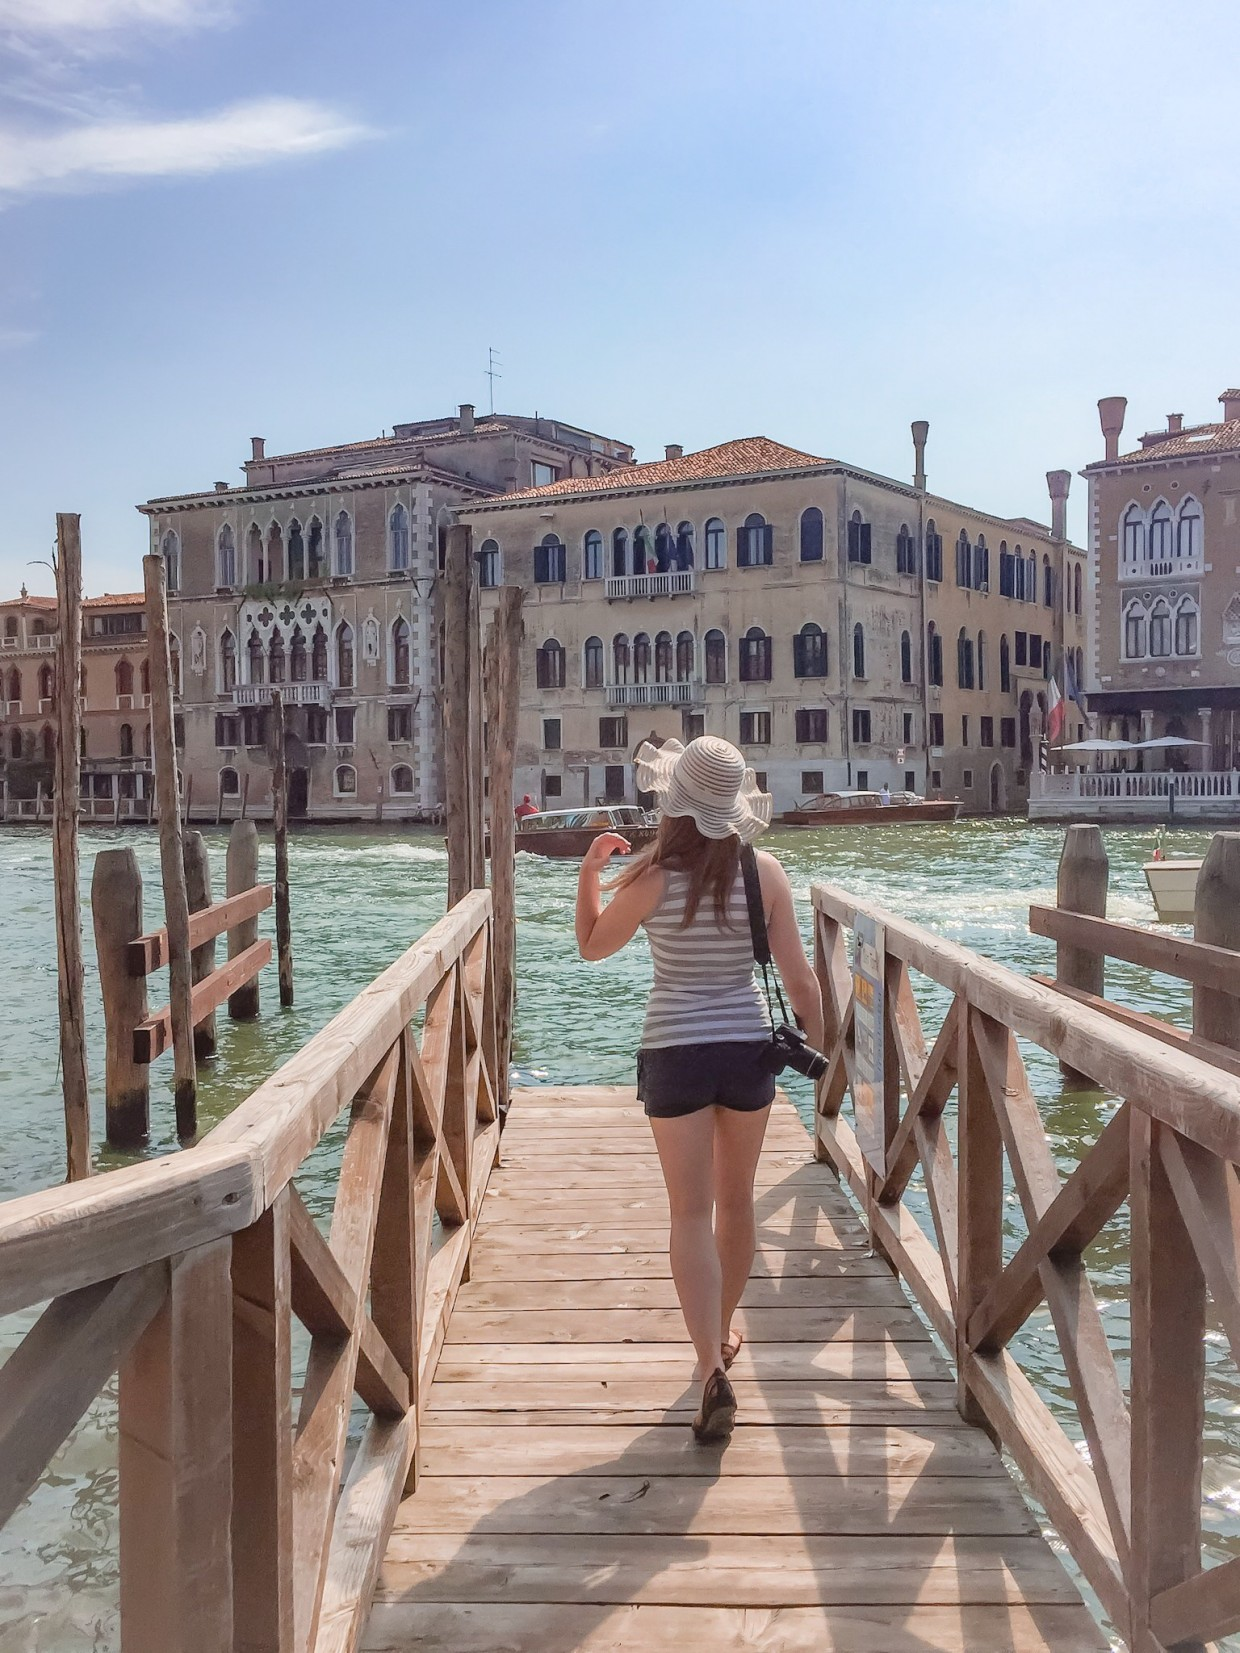 Looking out over Canal Grande, Venice